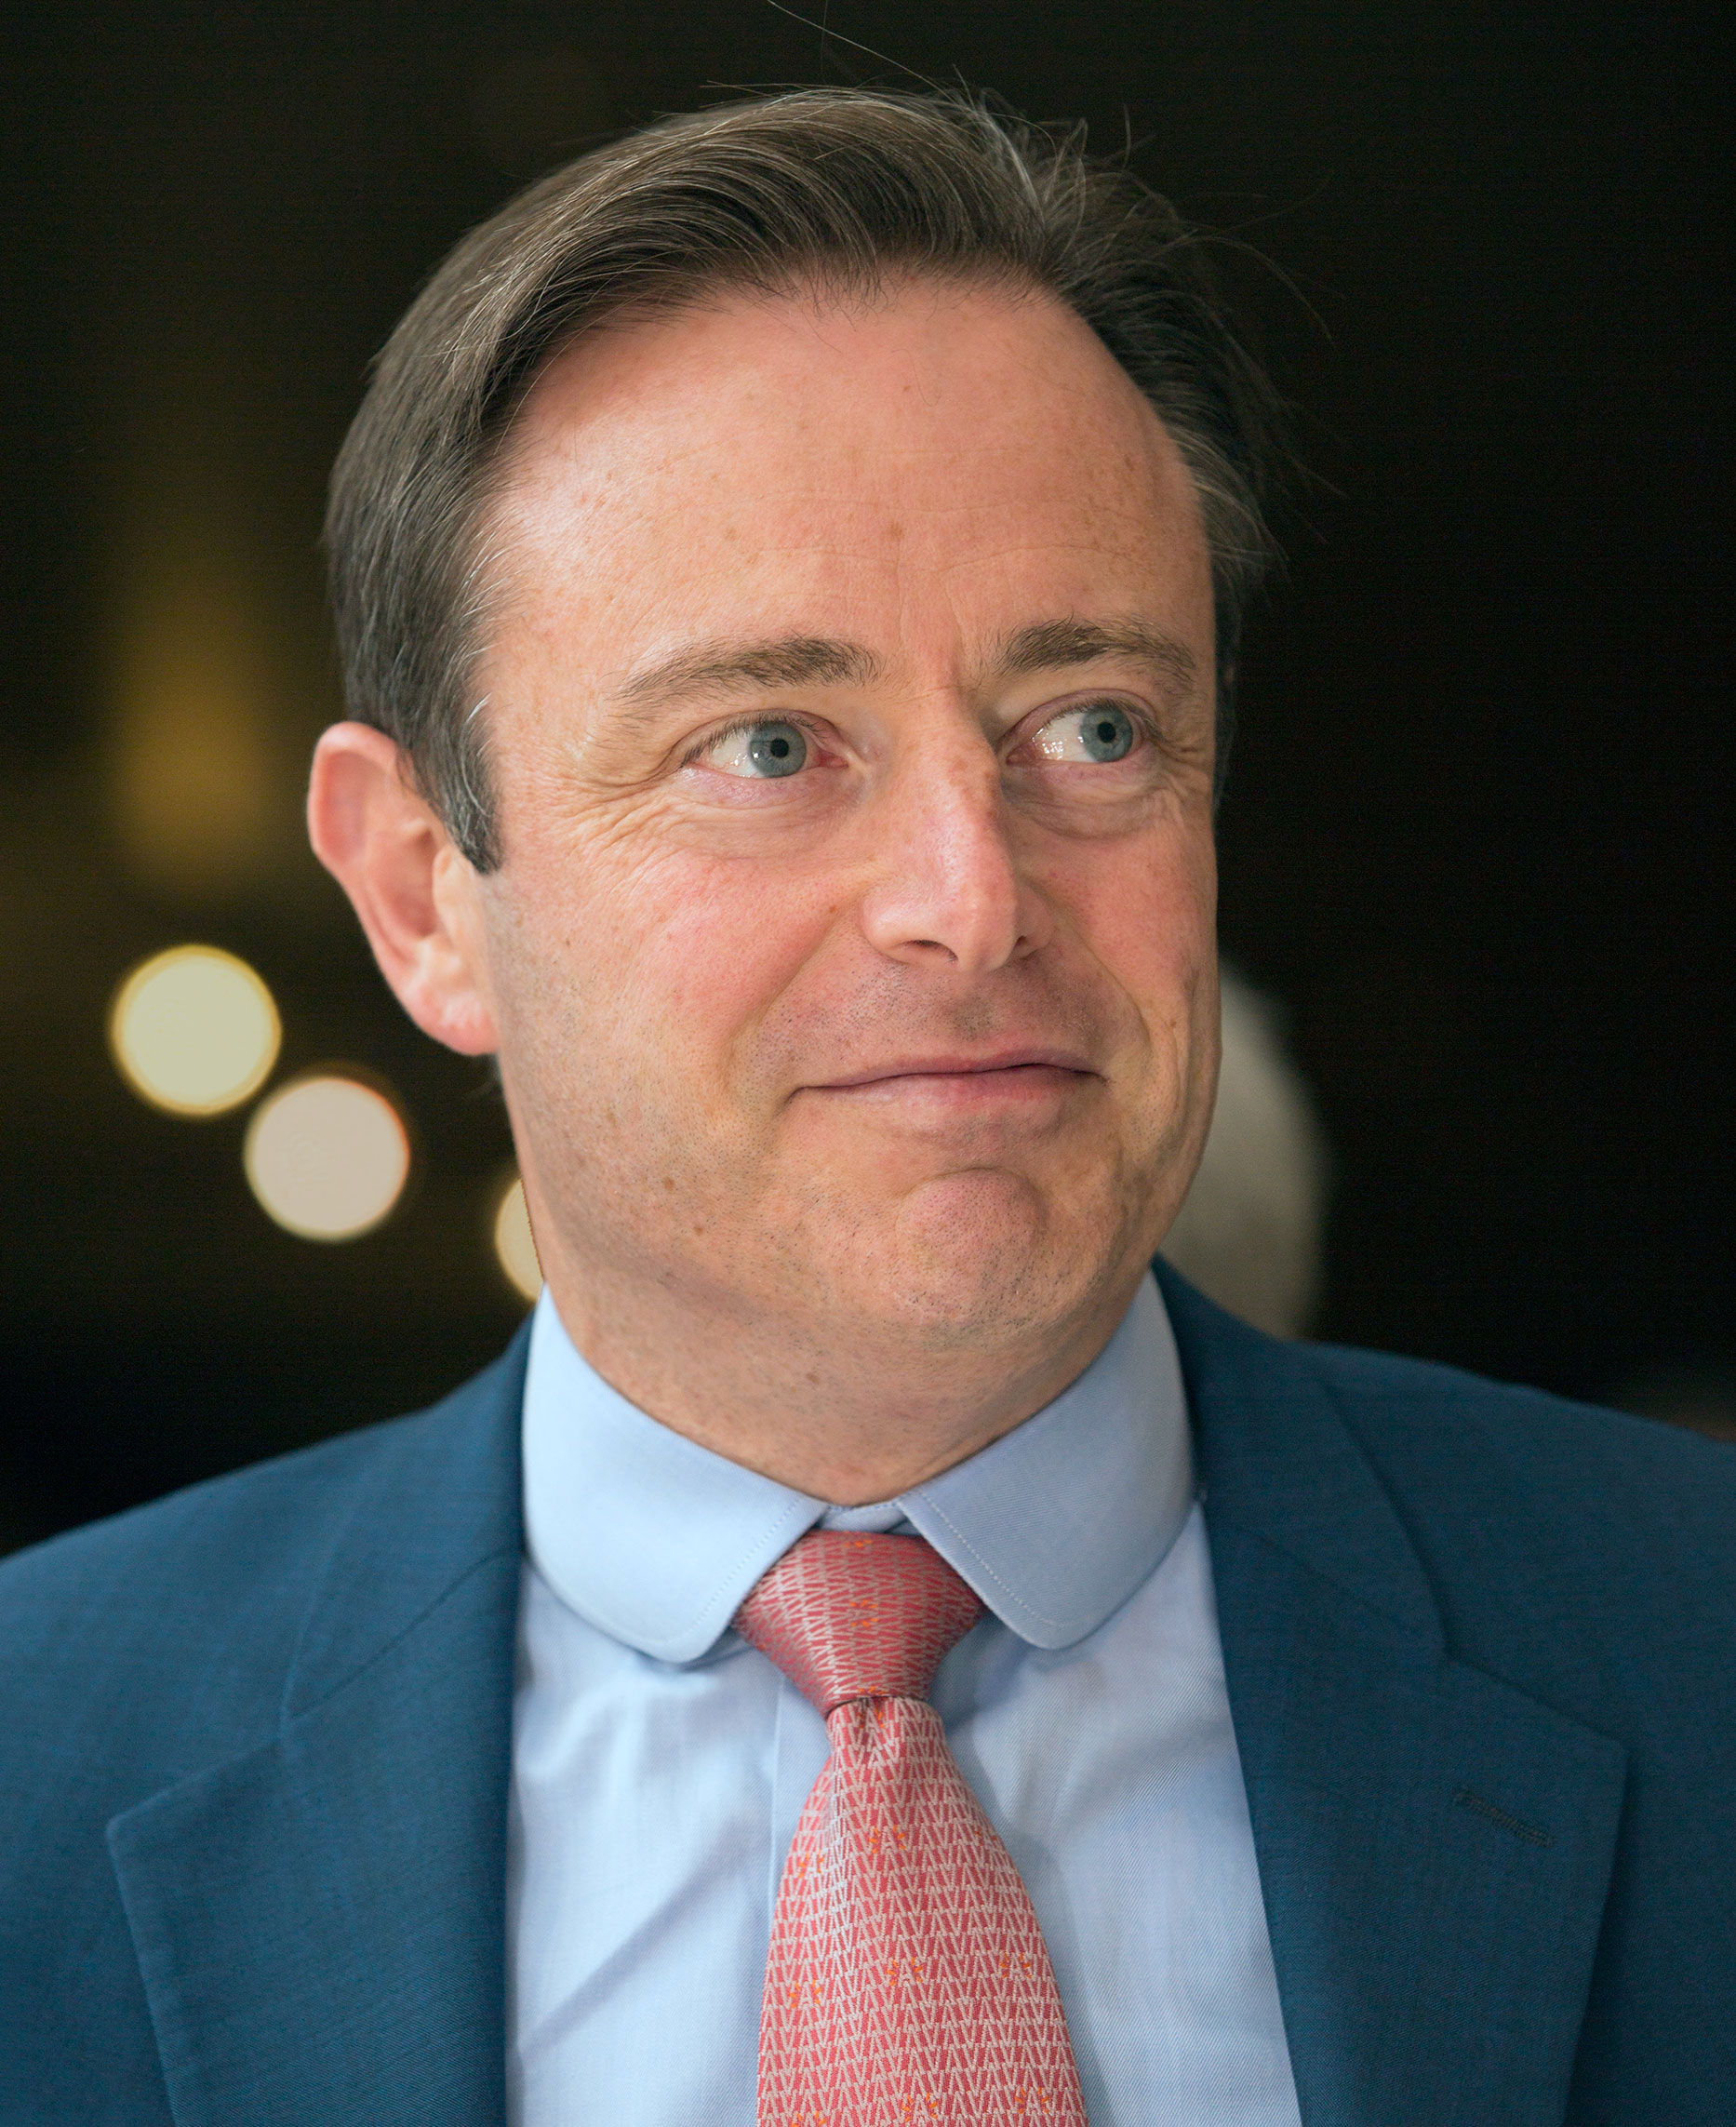 The 47-year old son of father Henri De Wever and mother(?) Bart de Wever in 2018 photo. Bart de Wever earned a 0.007 million dollar salary - leaving the net worth at 0.03 million in 2018